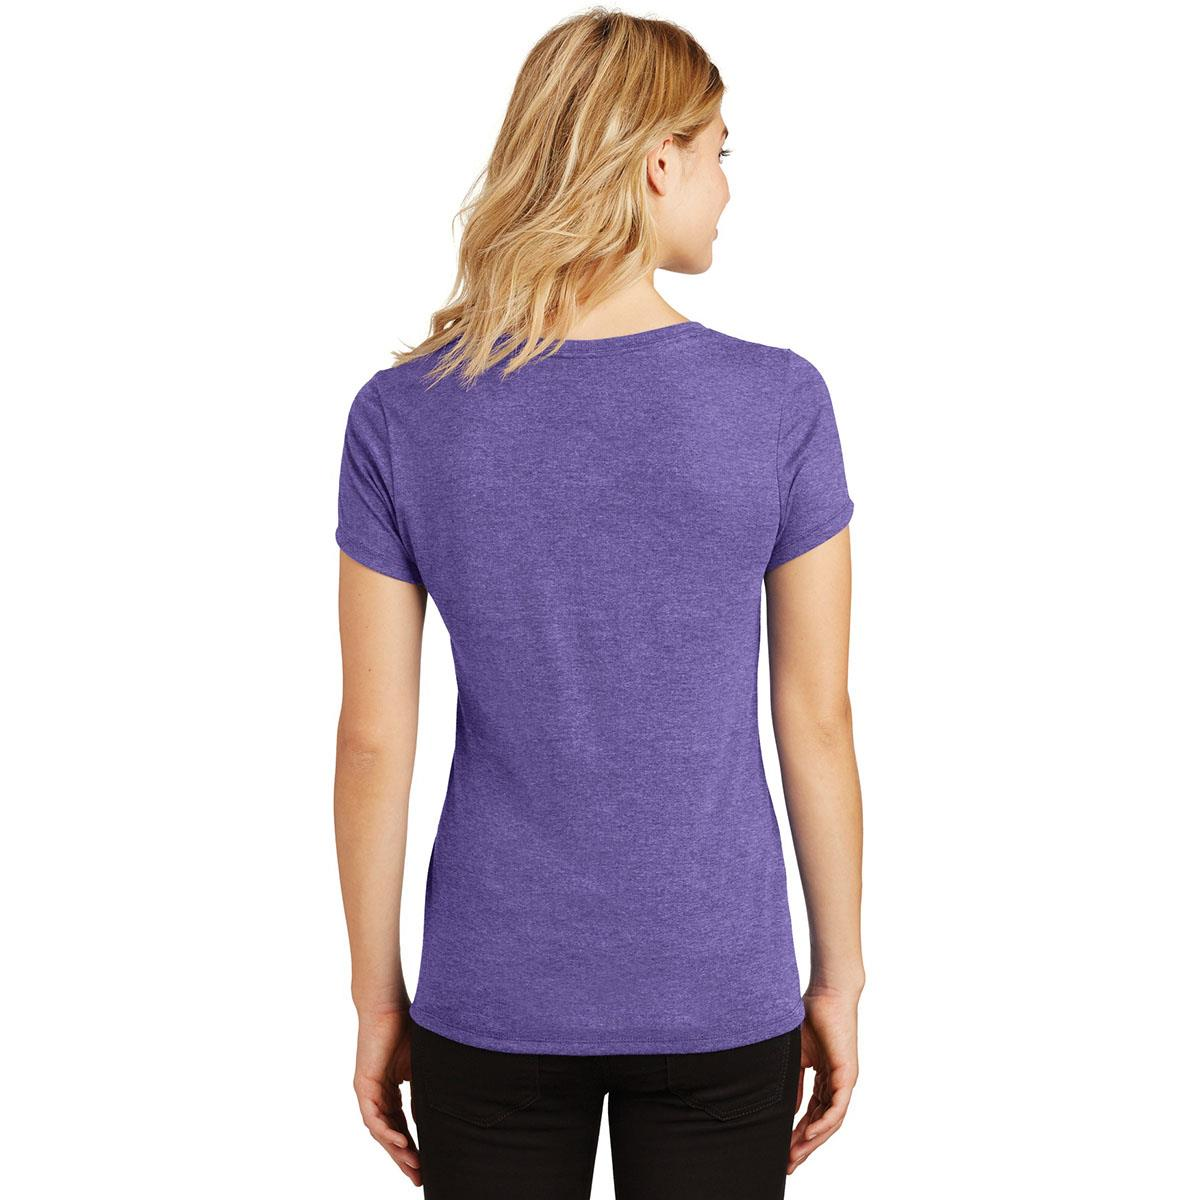 2017 Zombie Women's V-Neck Tee - Purple Frost